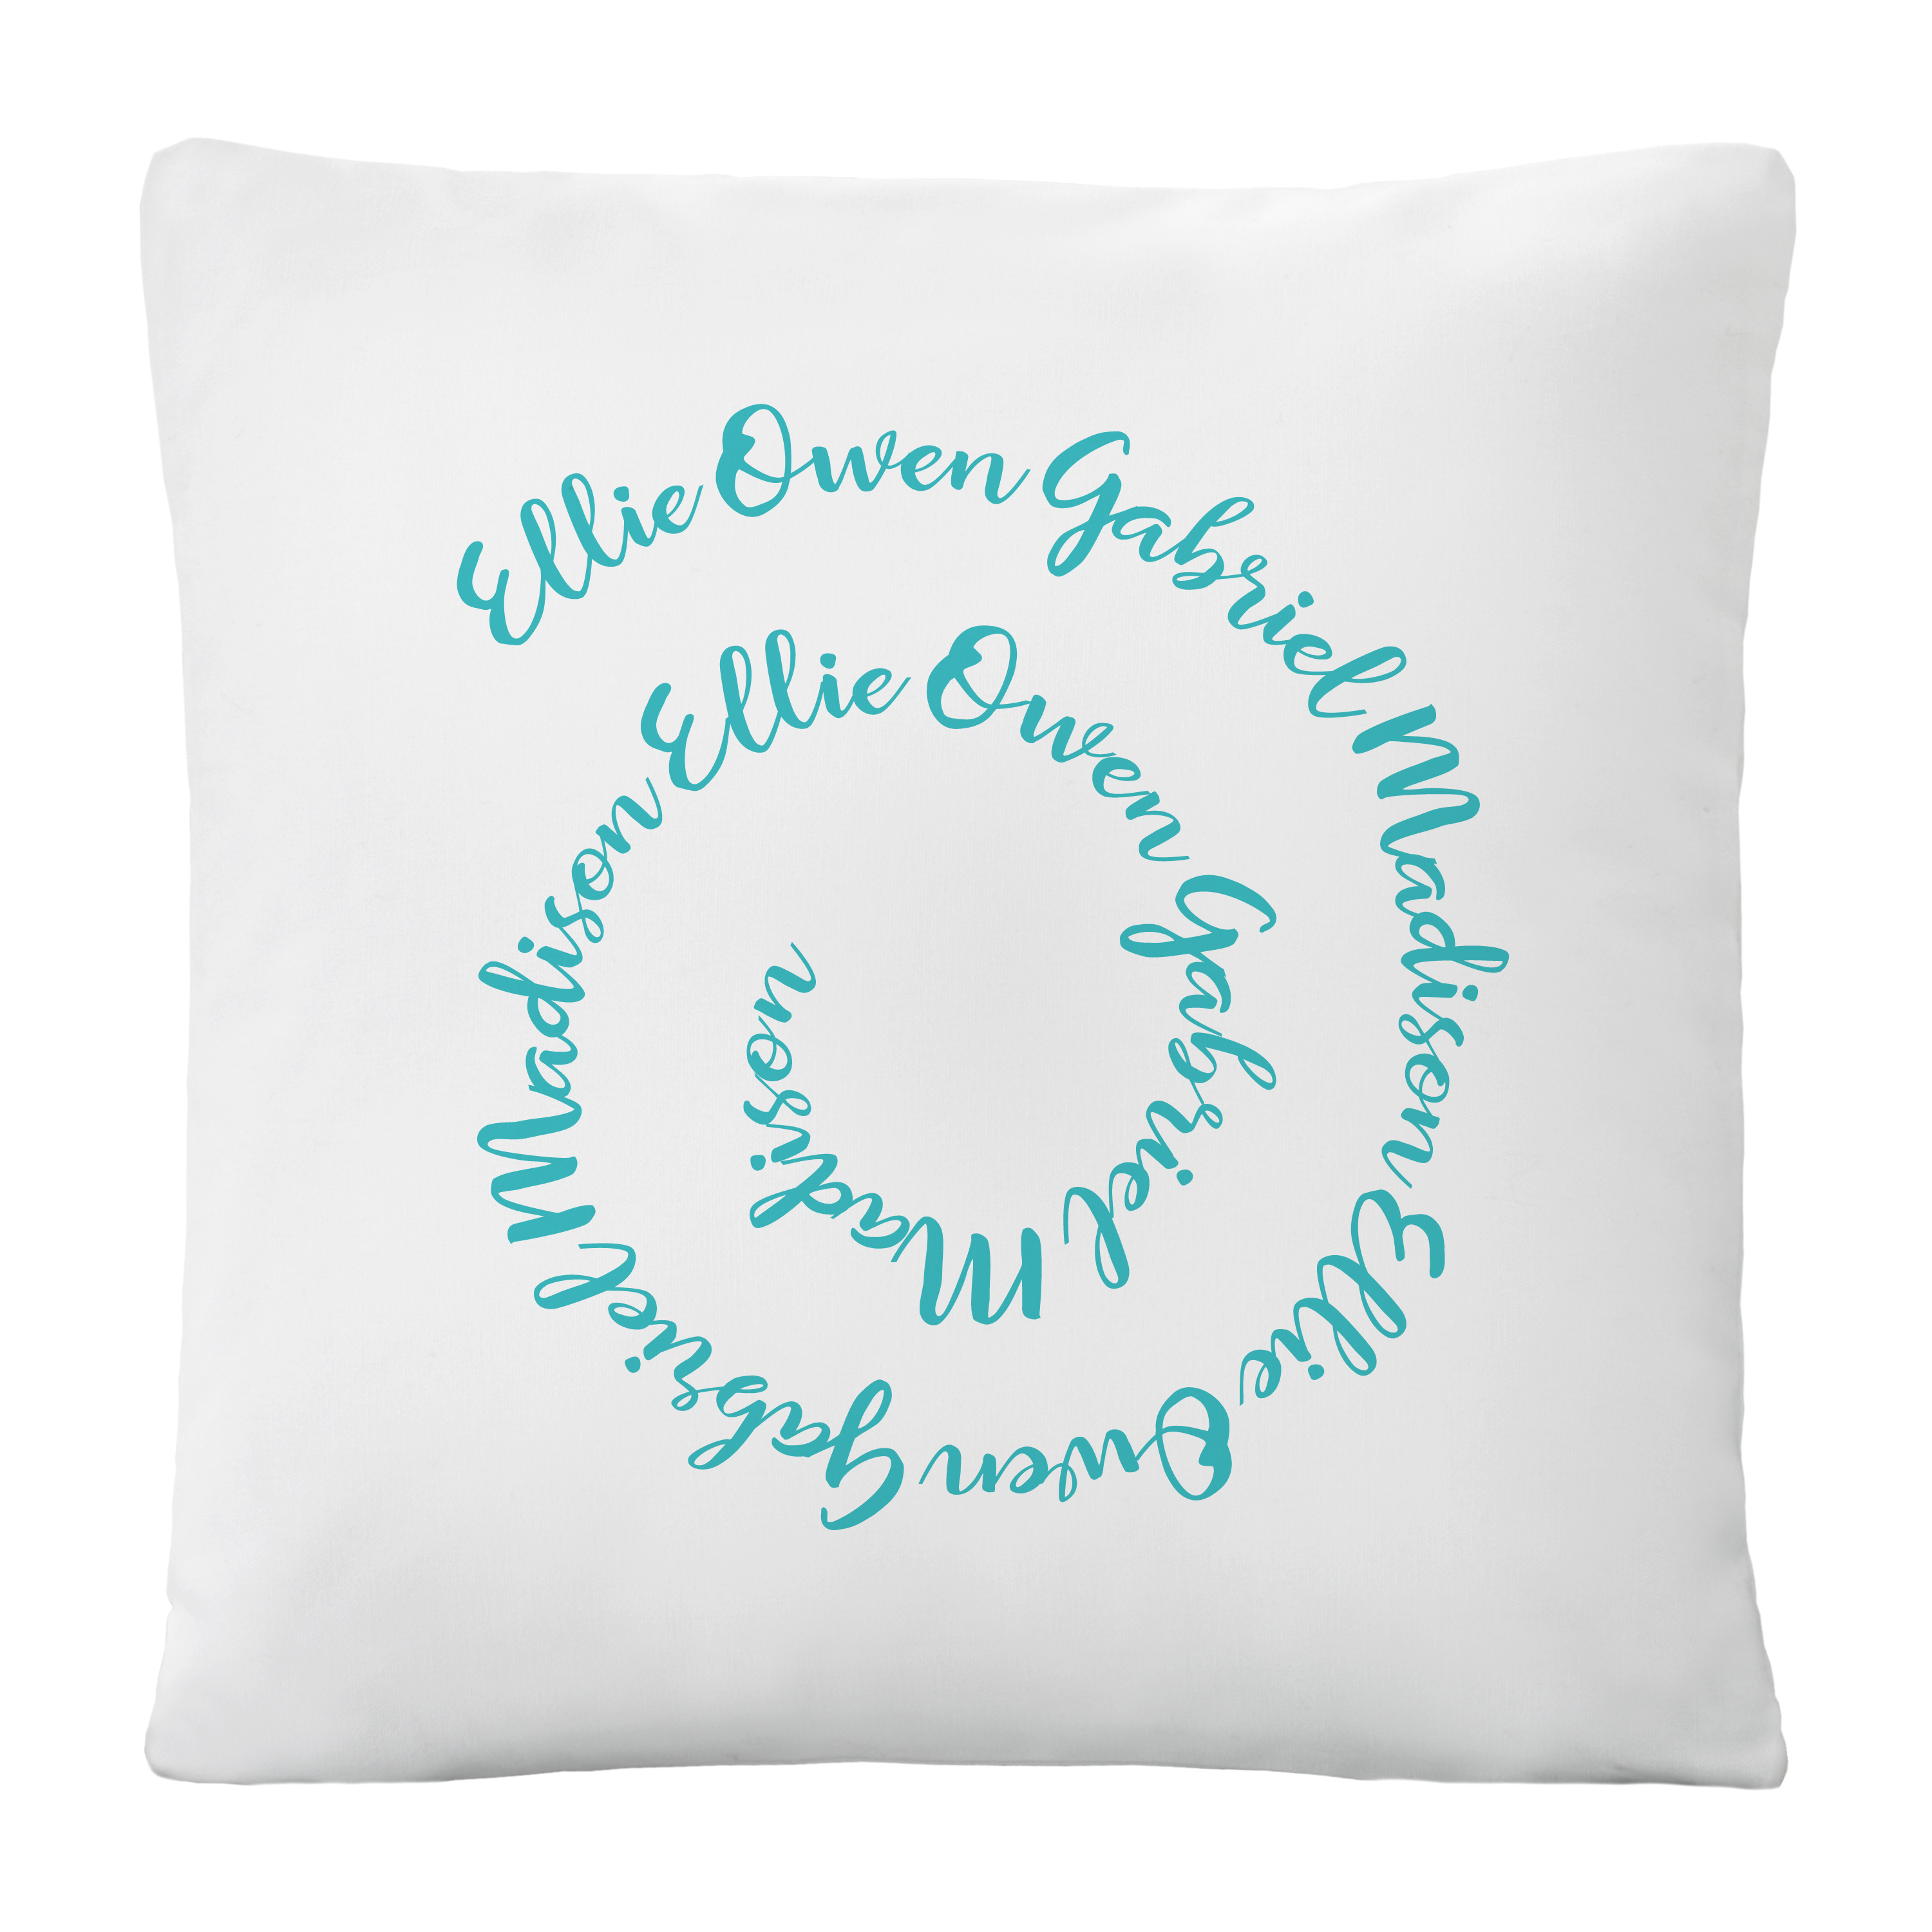 Personalized Circle of Love Throw Pillow - Available in Gold or Teal